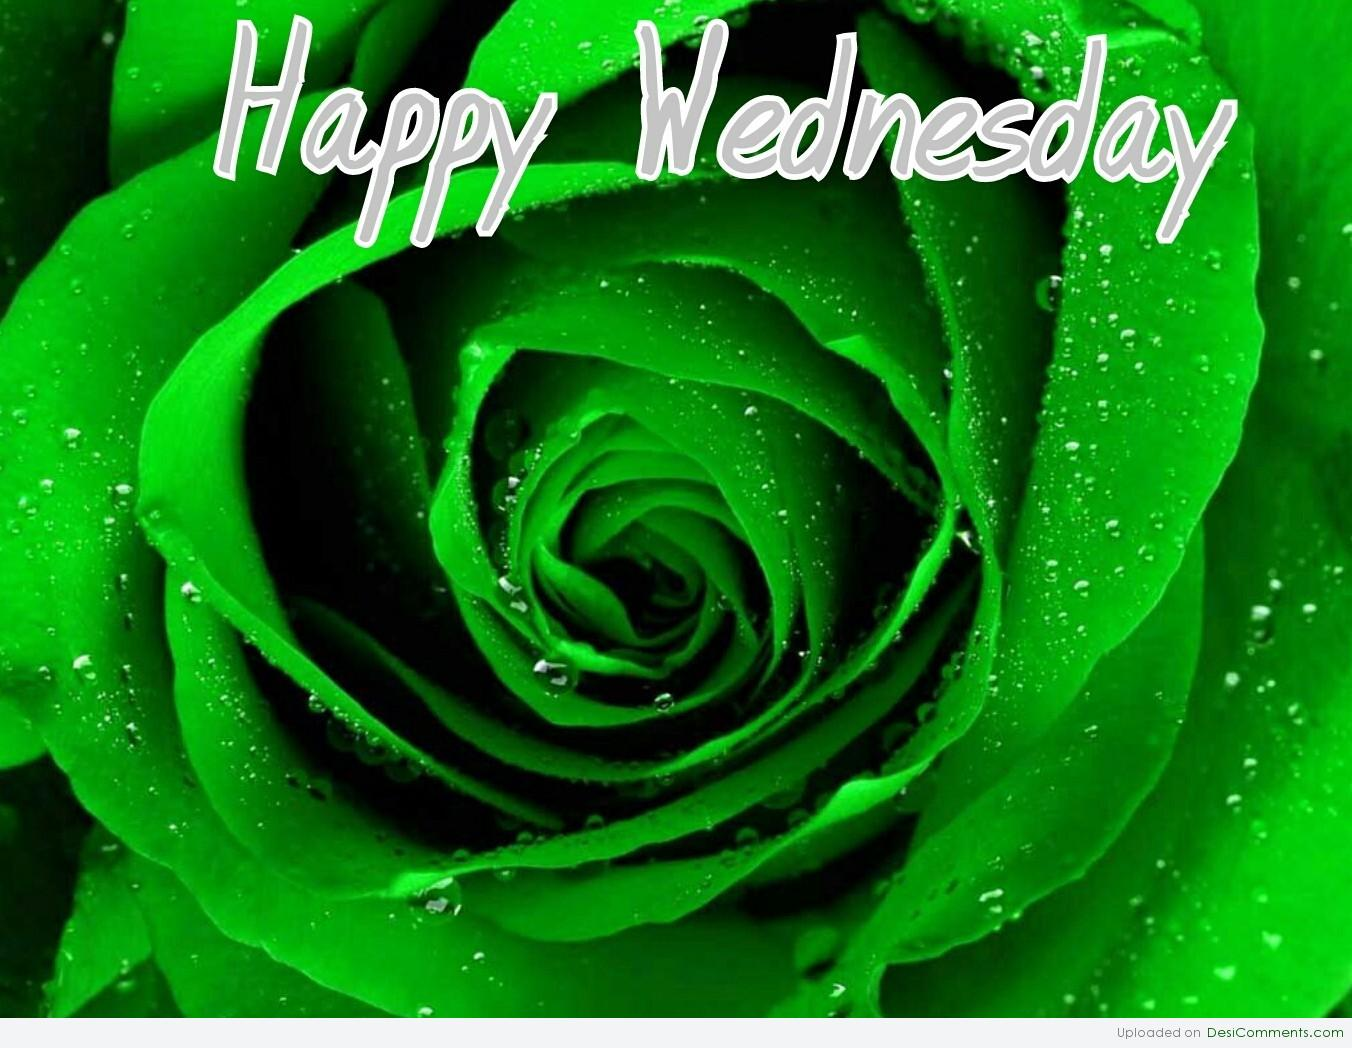 Hump Day Wednesday Quotes Funny